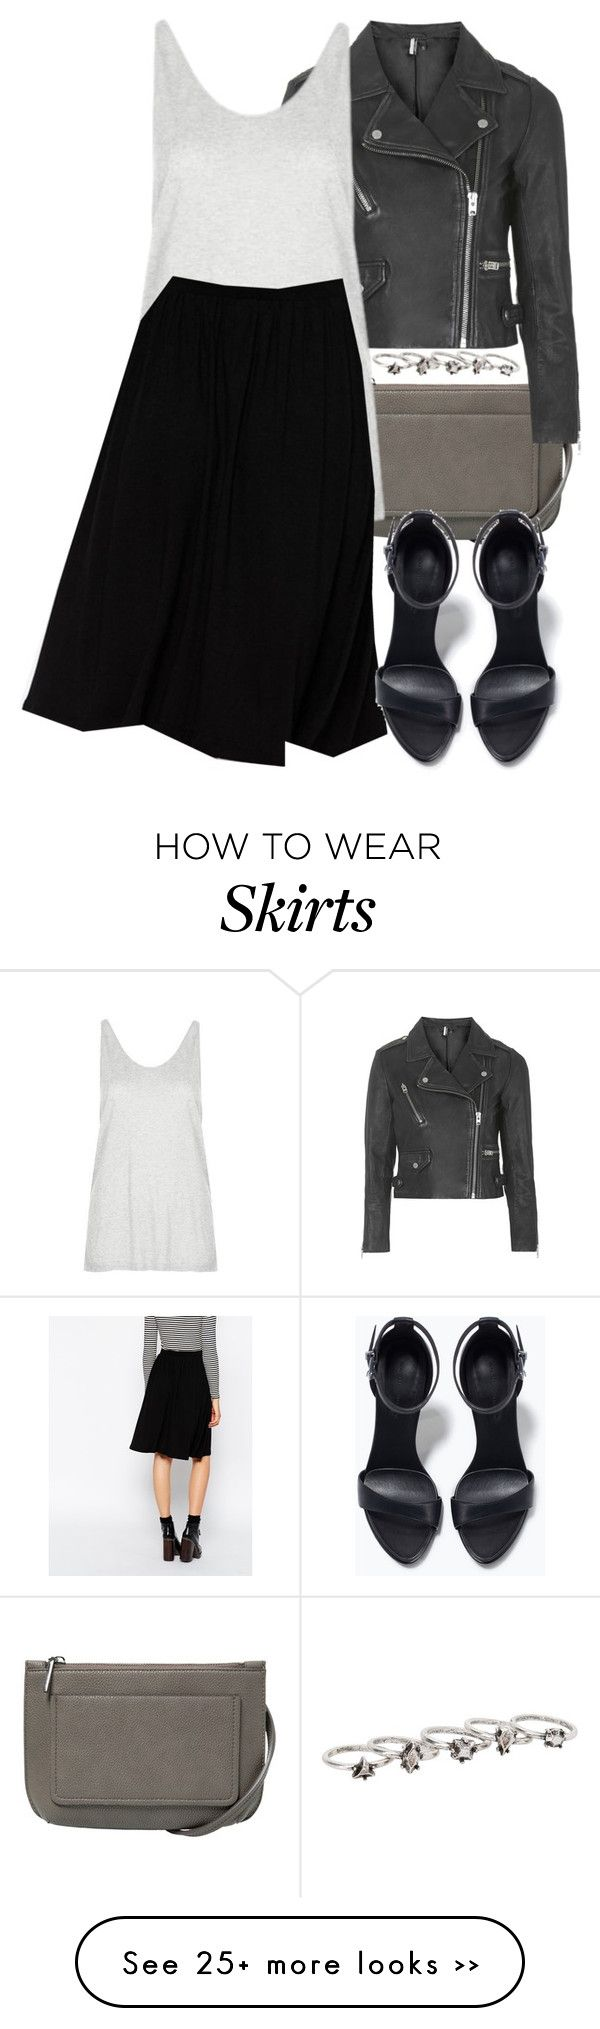 """Derek Inspired Outfit with a Black Midi Skater Skirt"" by veterization on Polyvore featuring MANGO, Topshop, Boutique, ASOS and Zara"